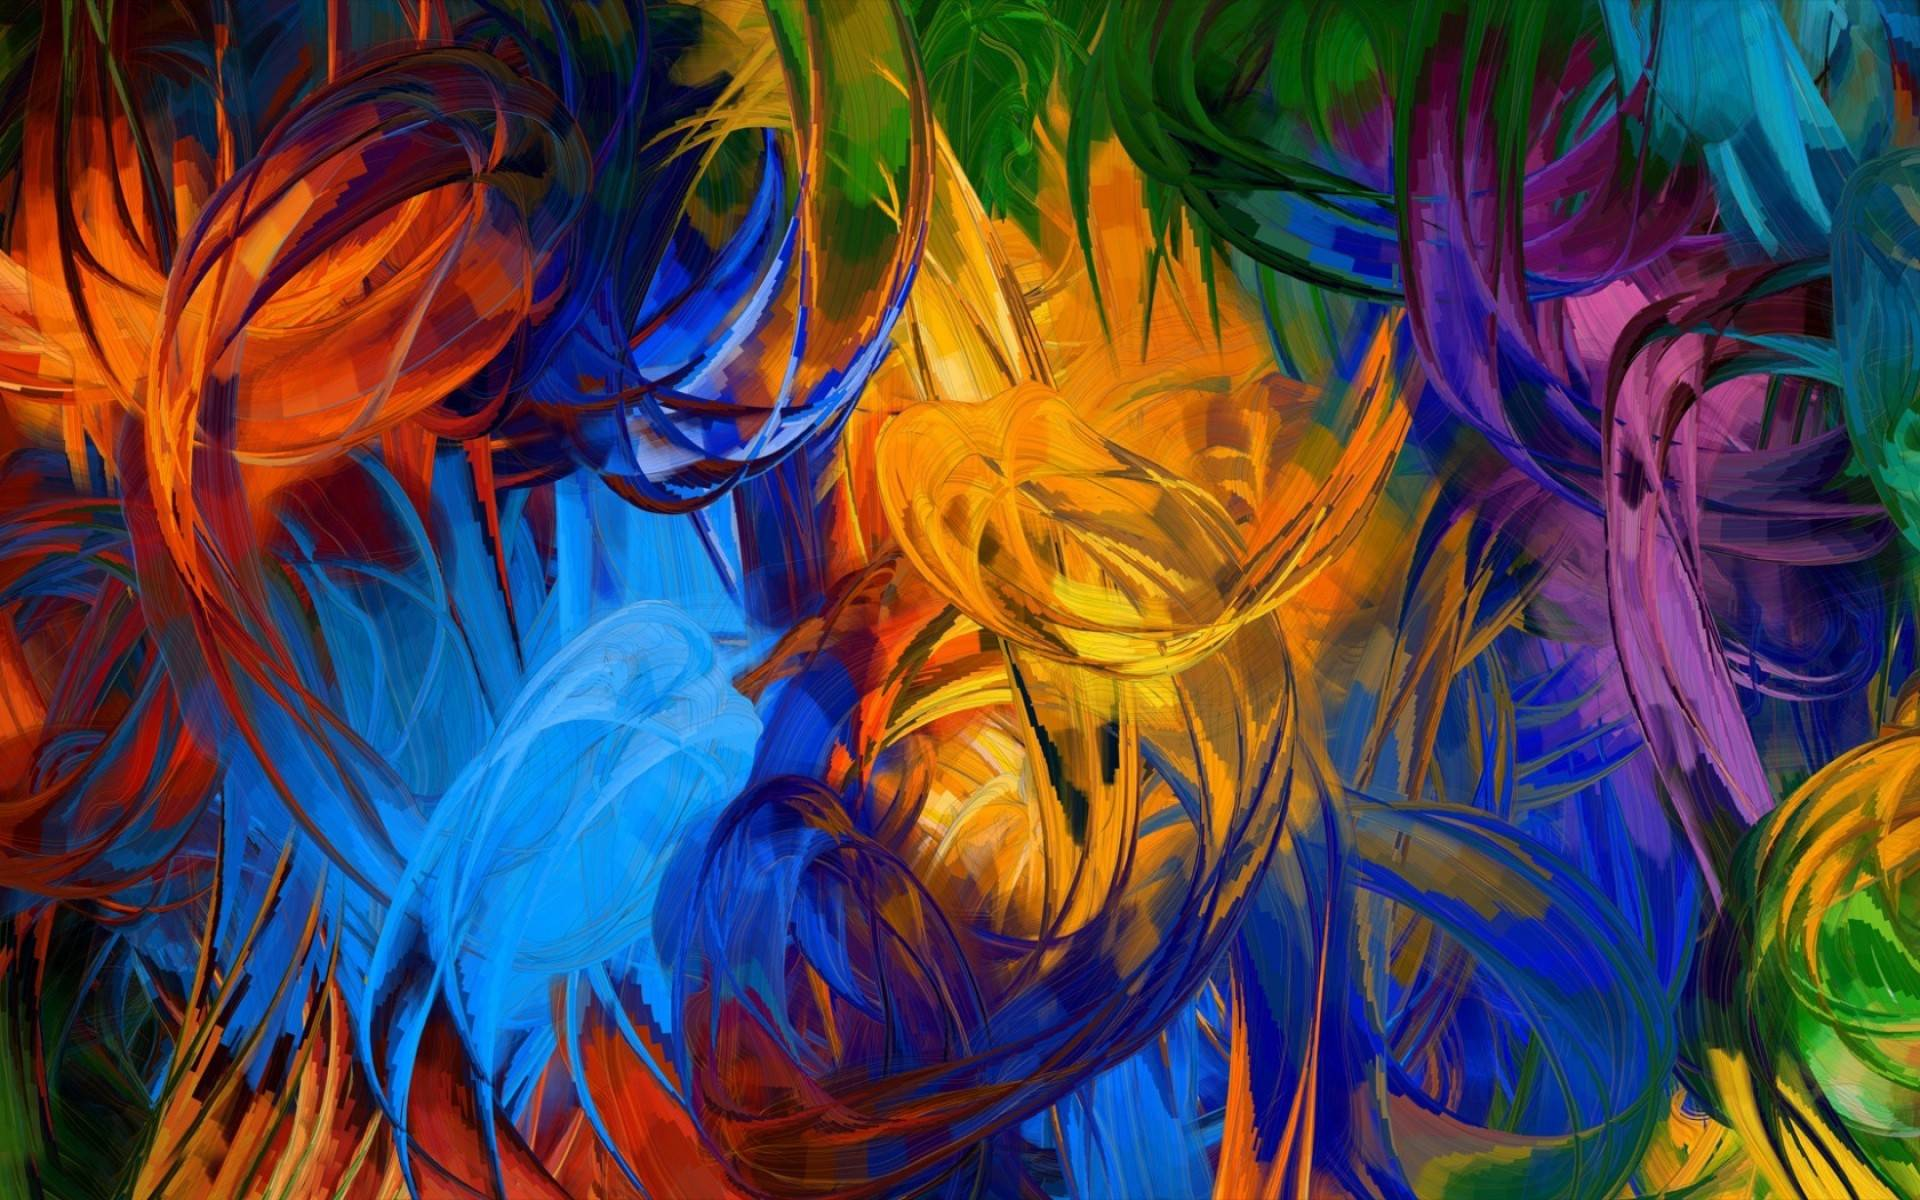 Abstract Paintings 19201200 Wallpaper 2196191 1920x1200